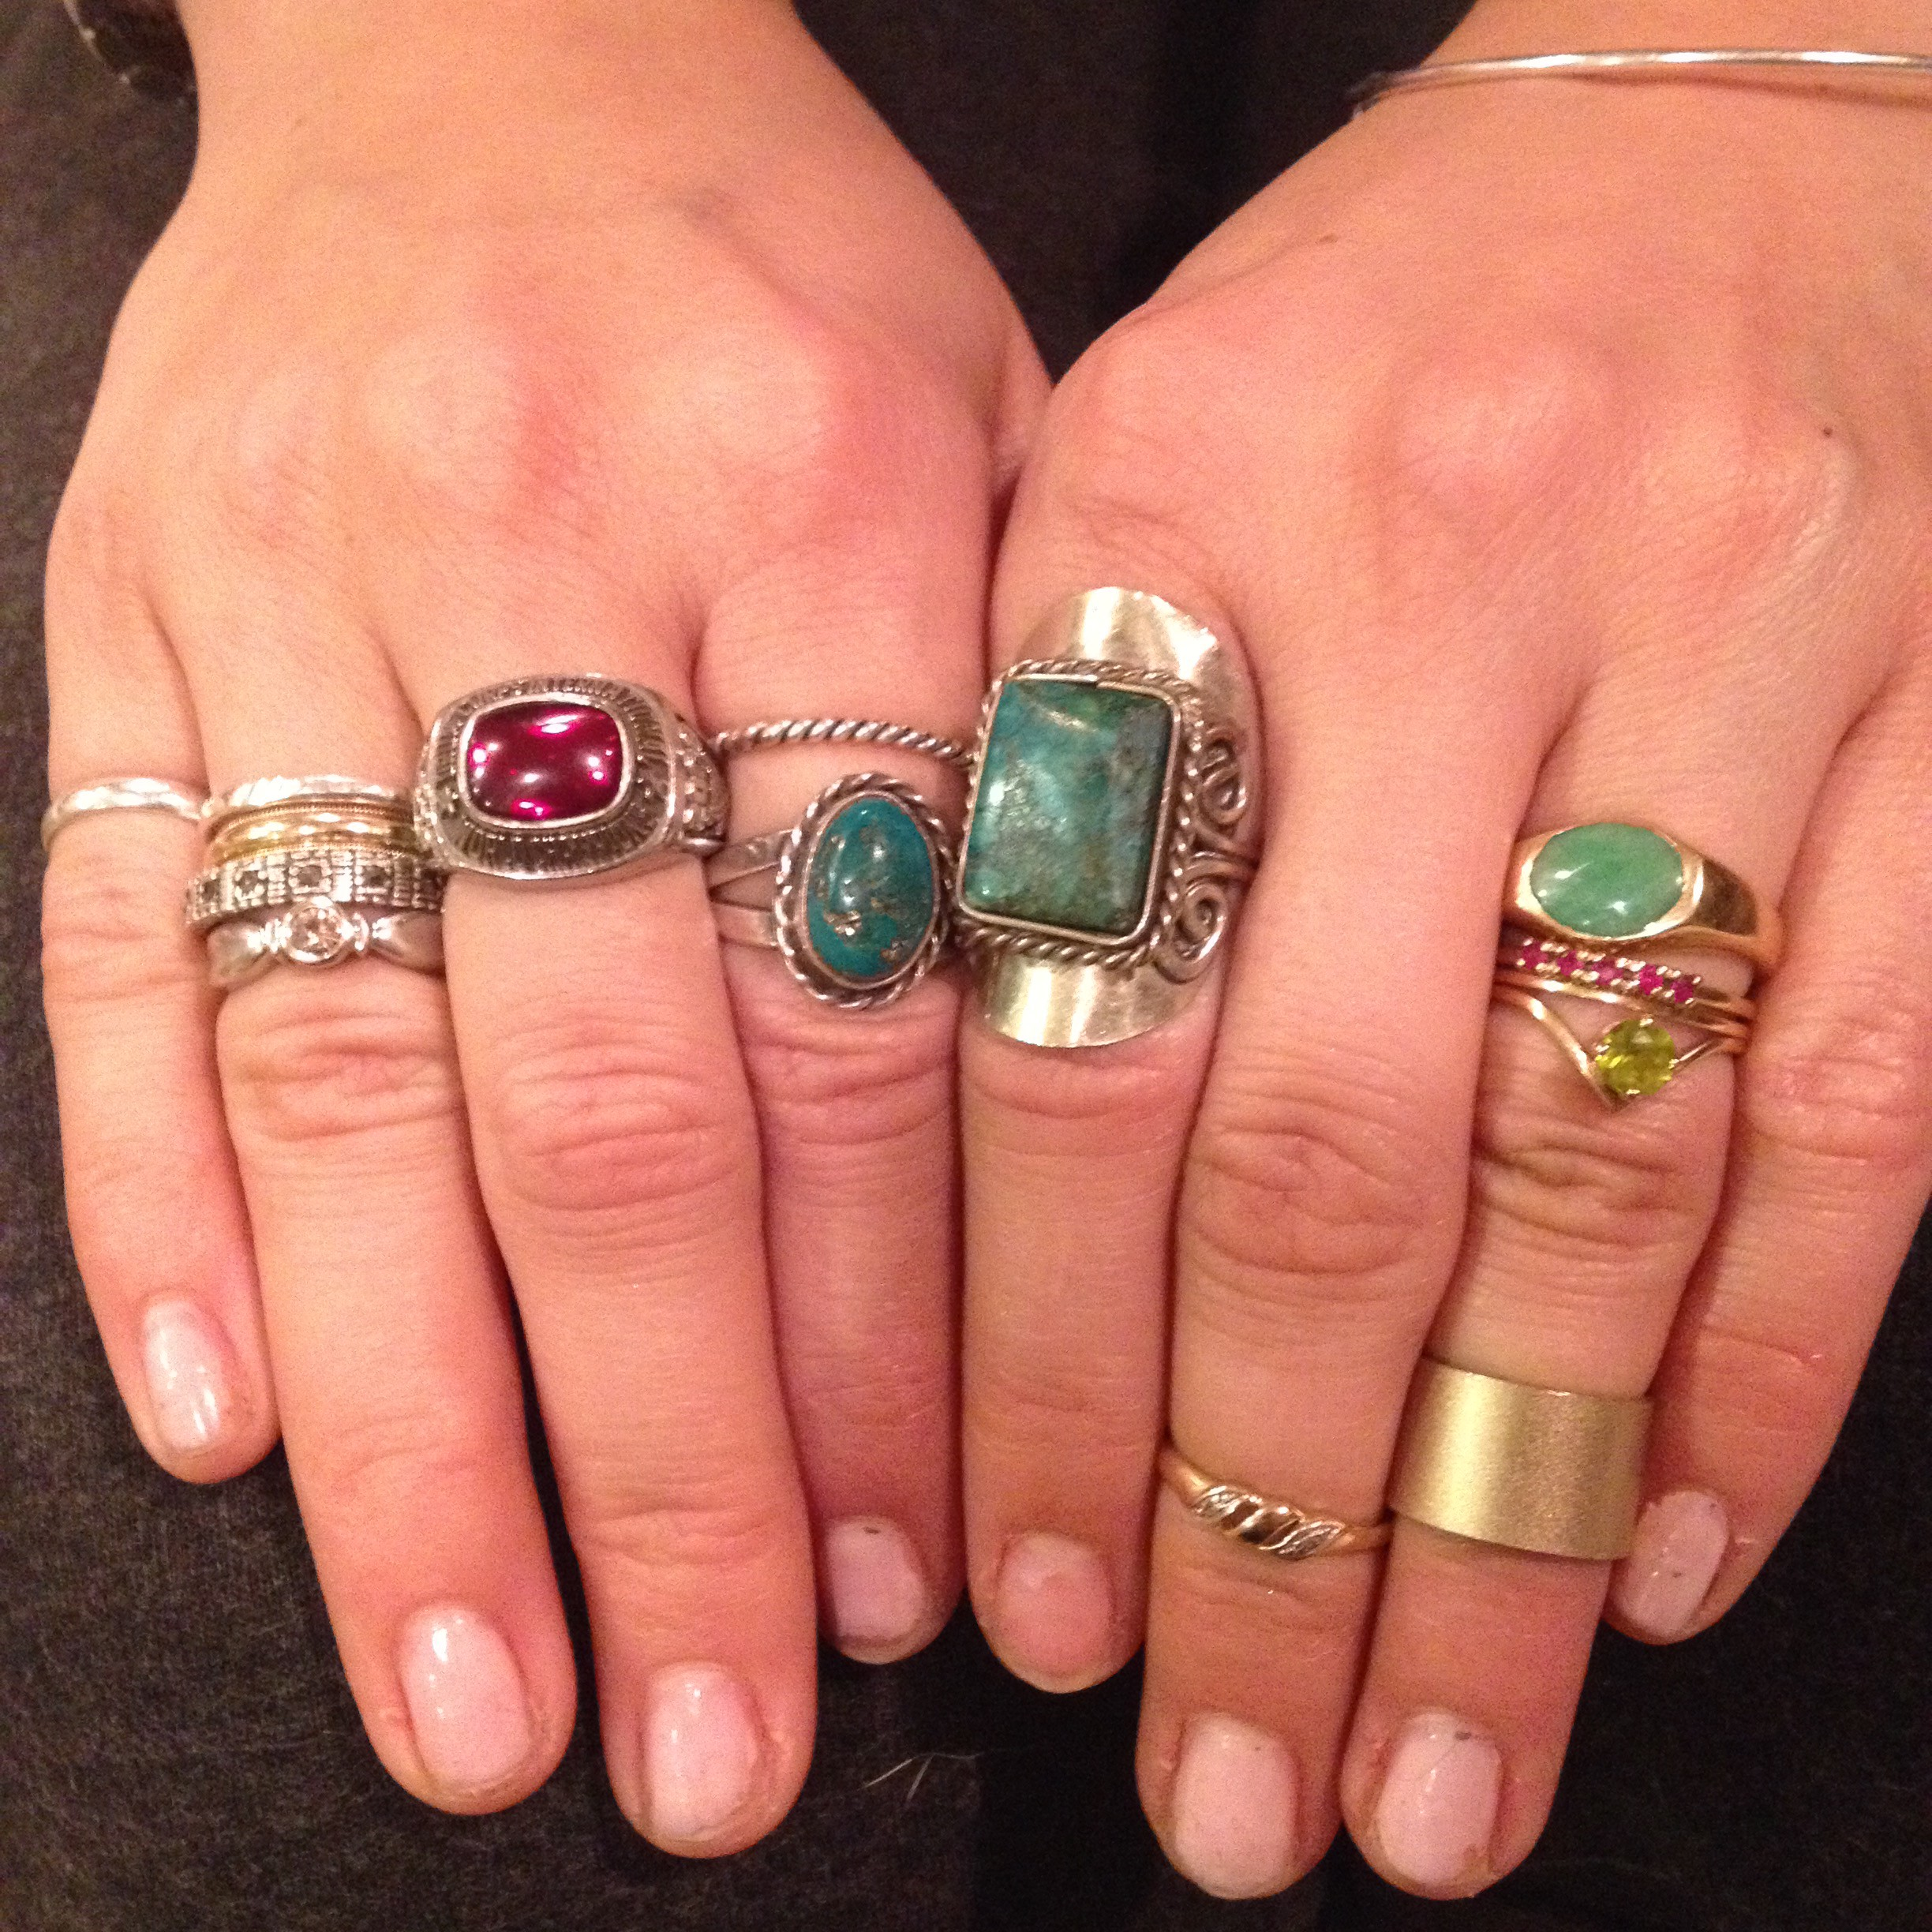 #RINGFEVER : Alex Loves her Pinky Rings